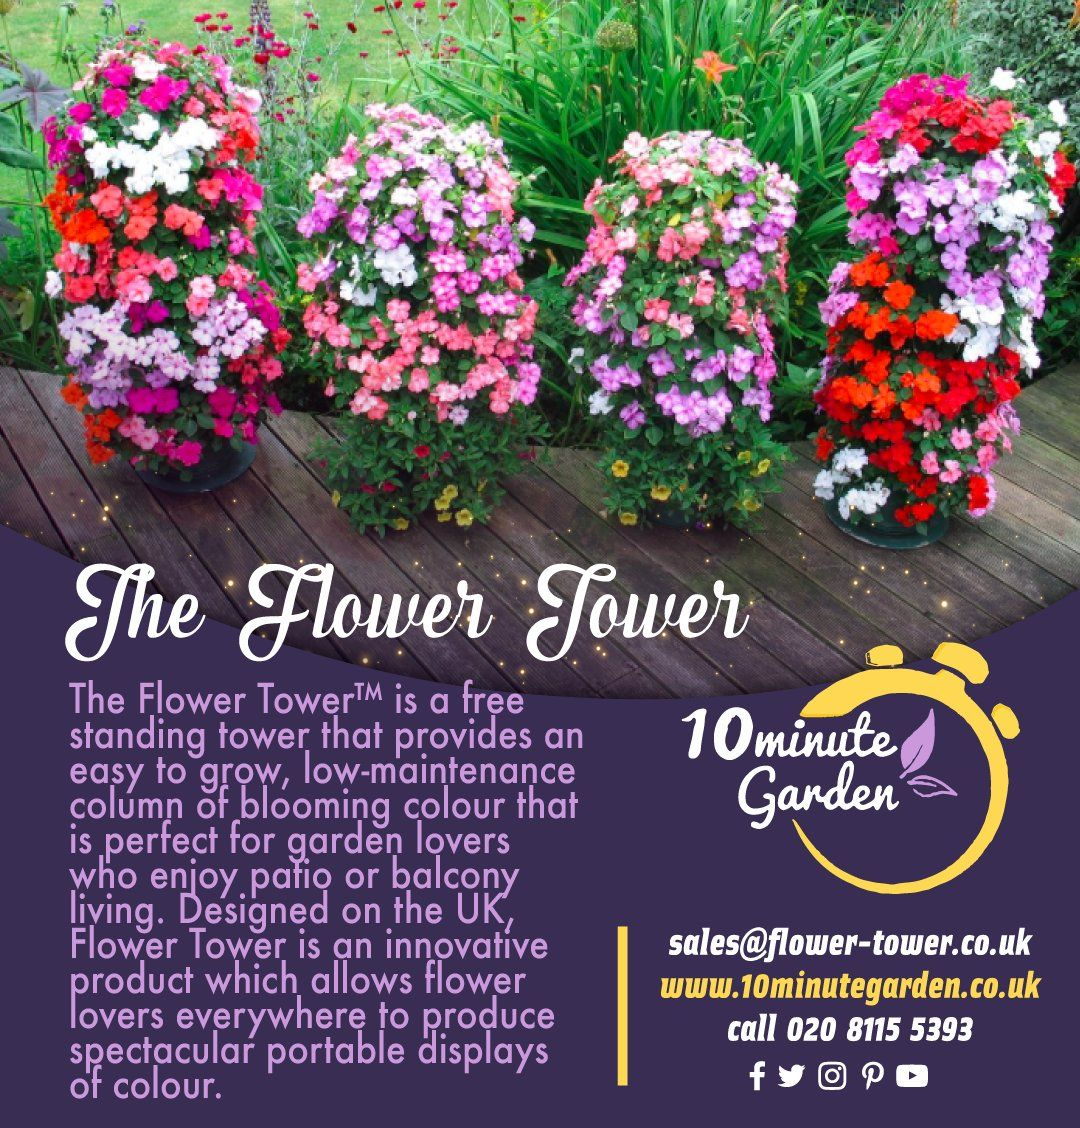 Flower Tower is an innovative product which allows flower